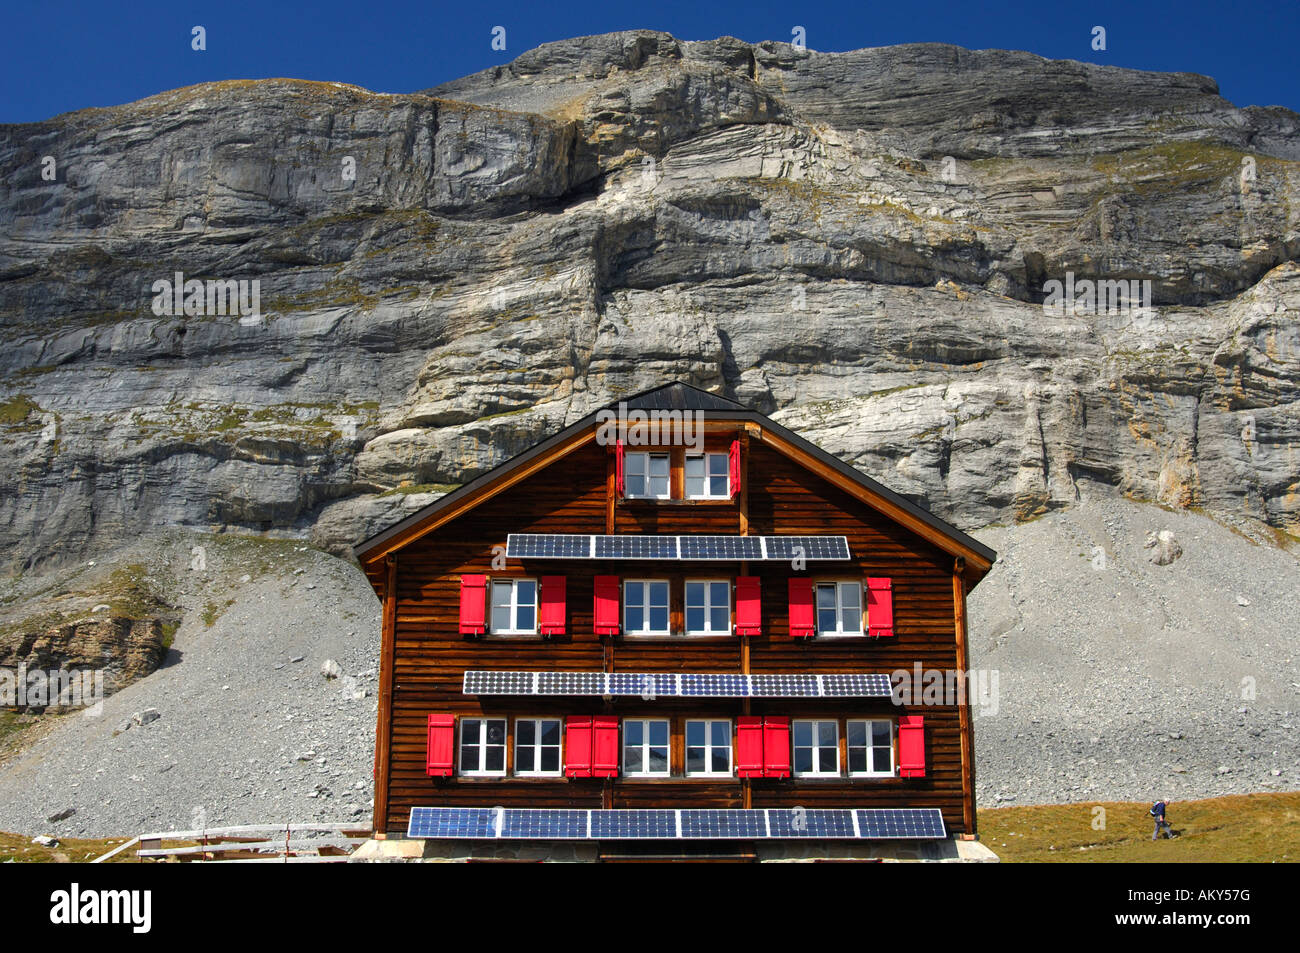 Use of solar energy in remote areas, Laemmerenhuette, Swiss Alpine Club, Switzerland - Stock Image